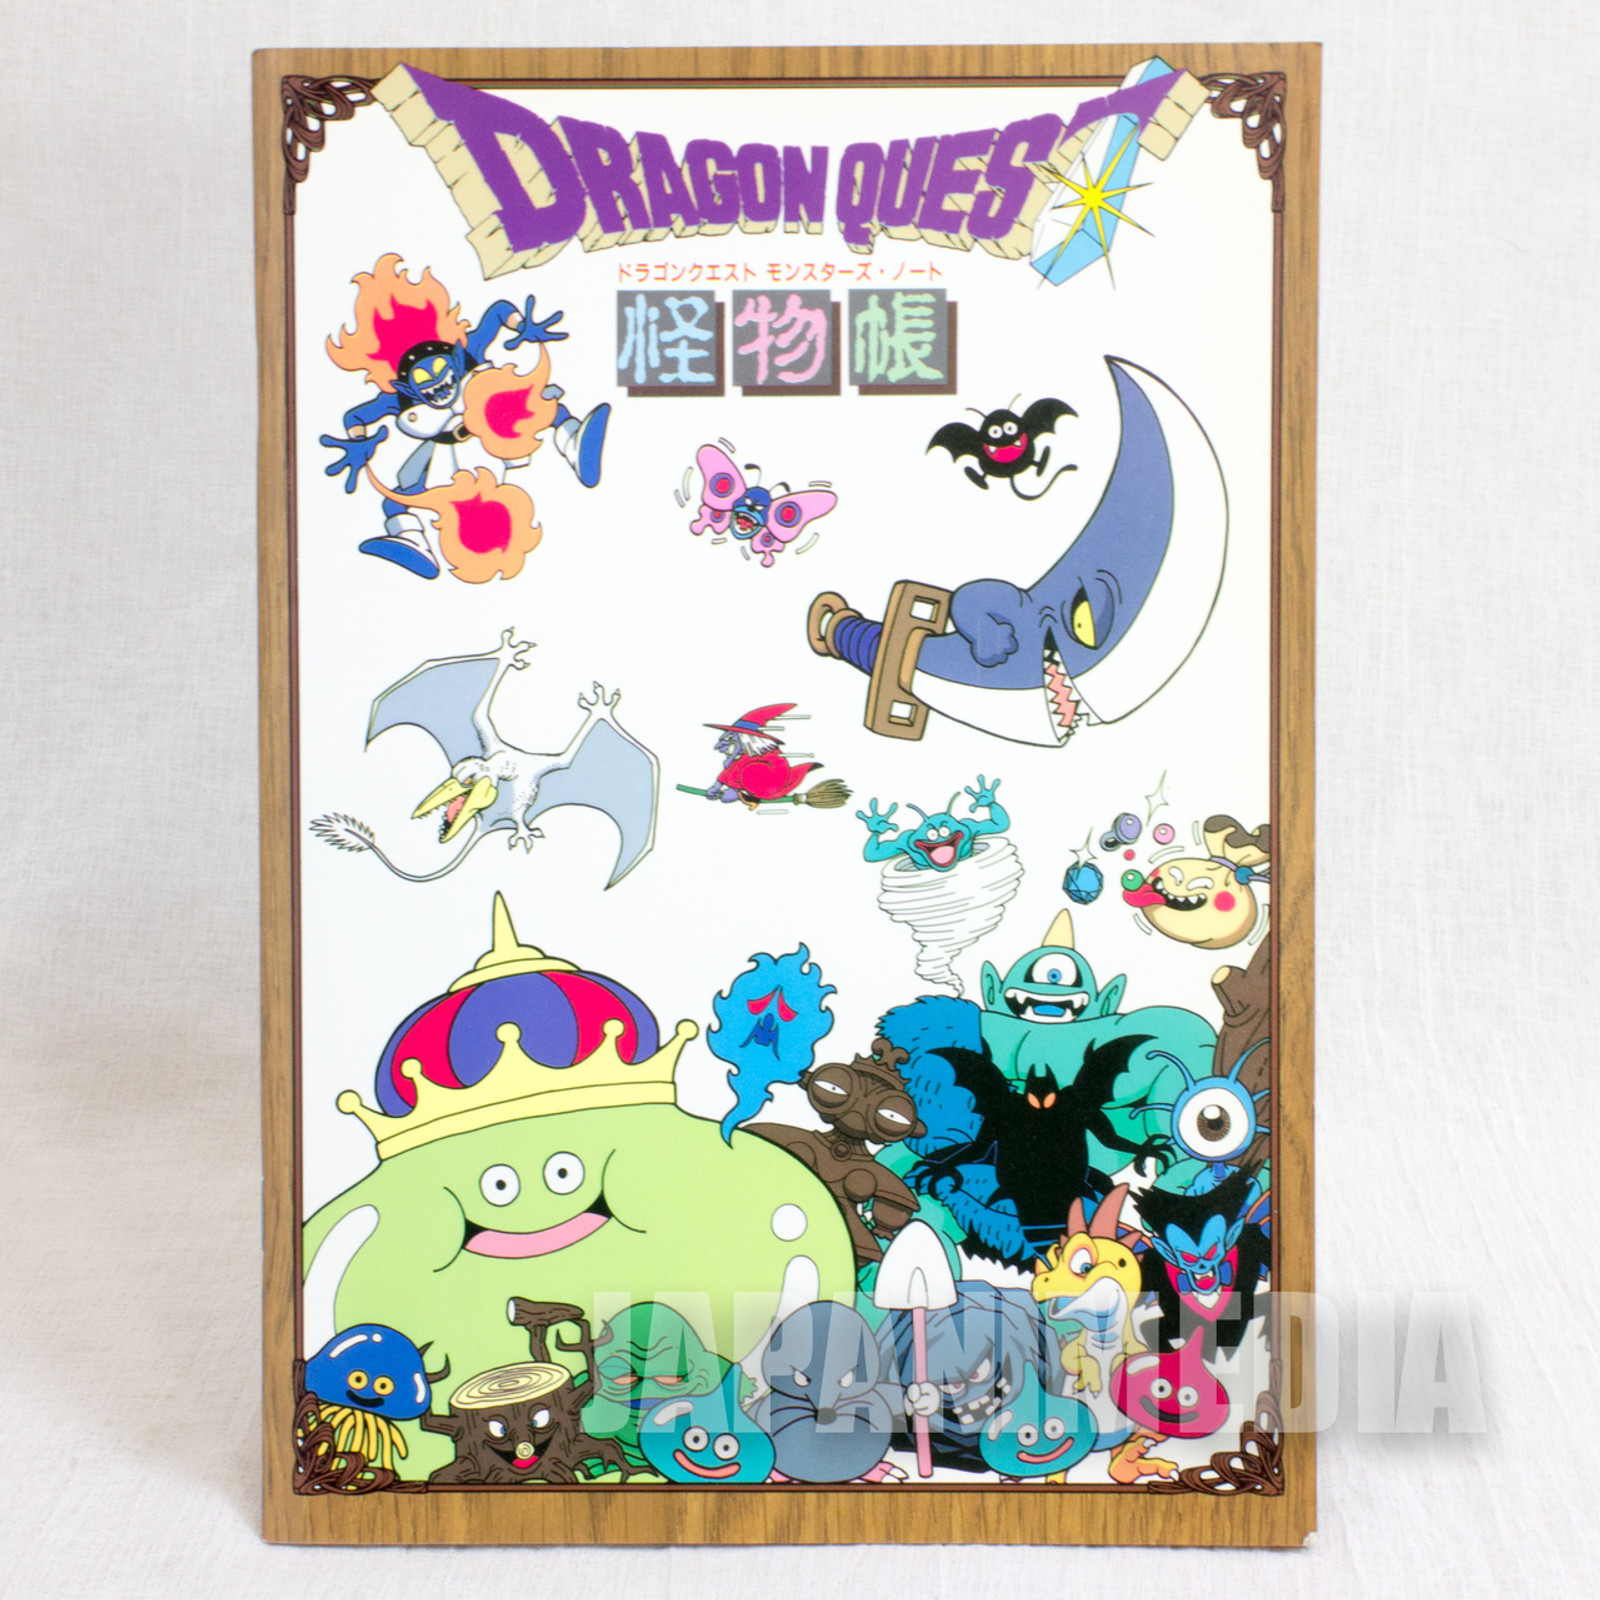 Retro Rare! Dragon Quest Monsters Notebook Showa Note JAPAN ANIME WARRIOR